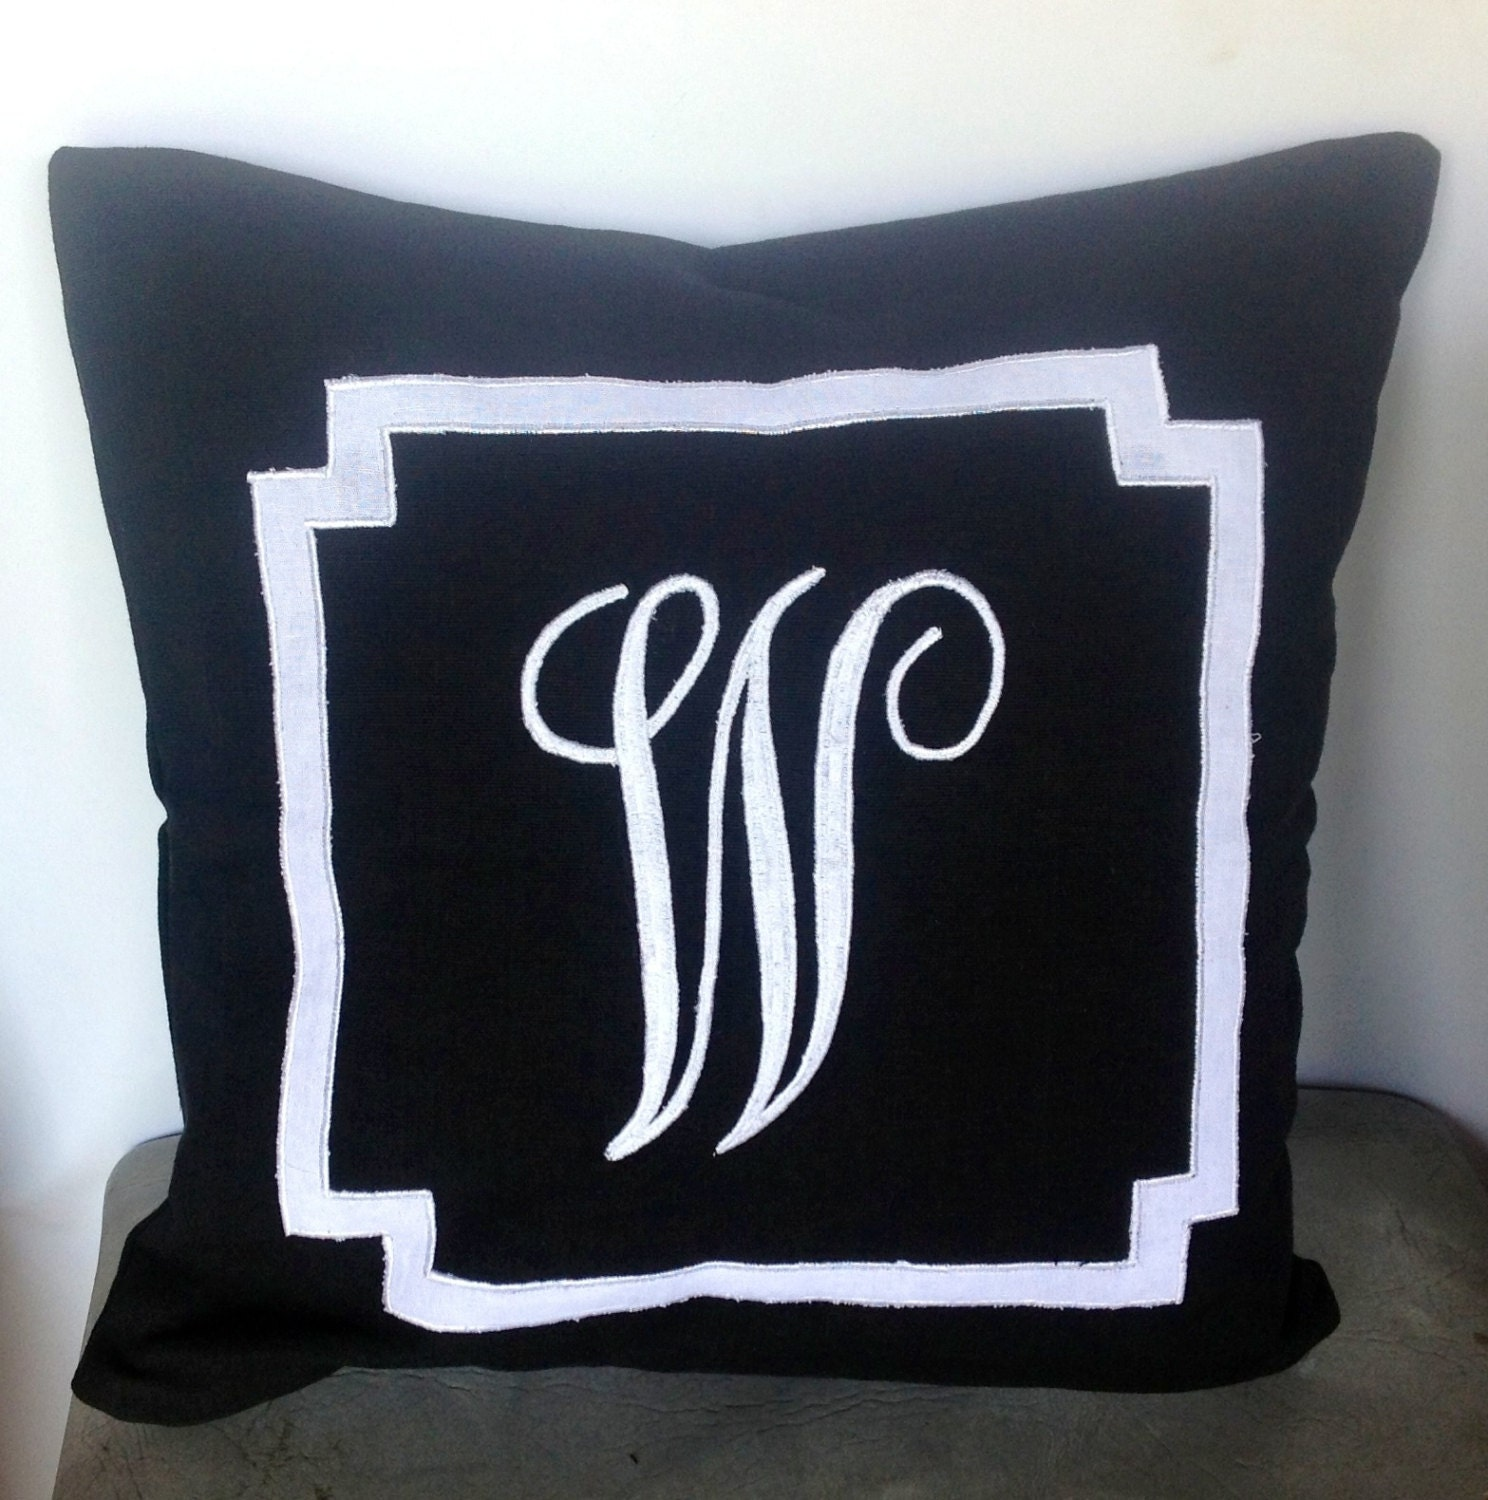 Personalized Embroidered Throw Pillows : Monogrammed black embroidered border pillow cover black throw